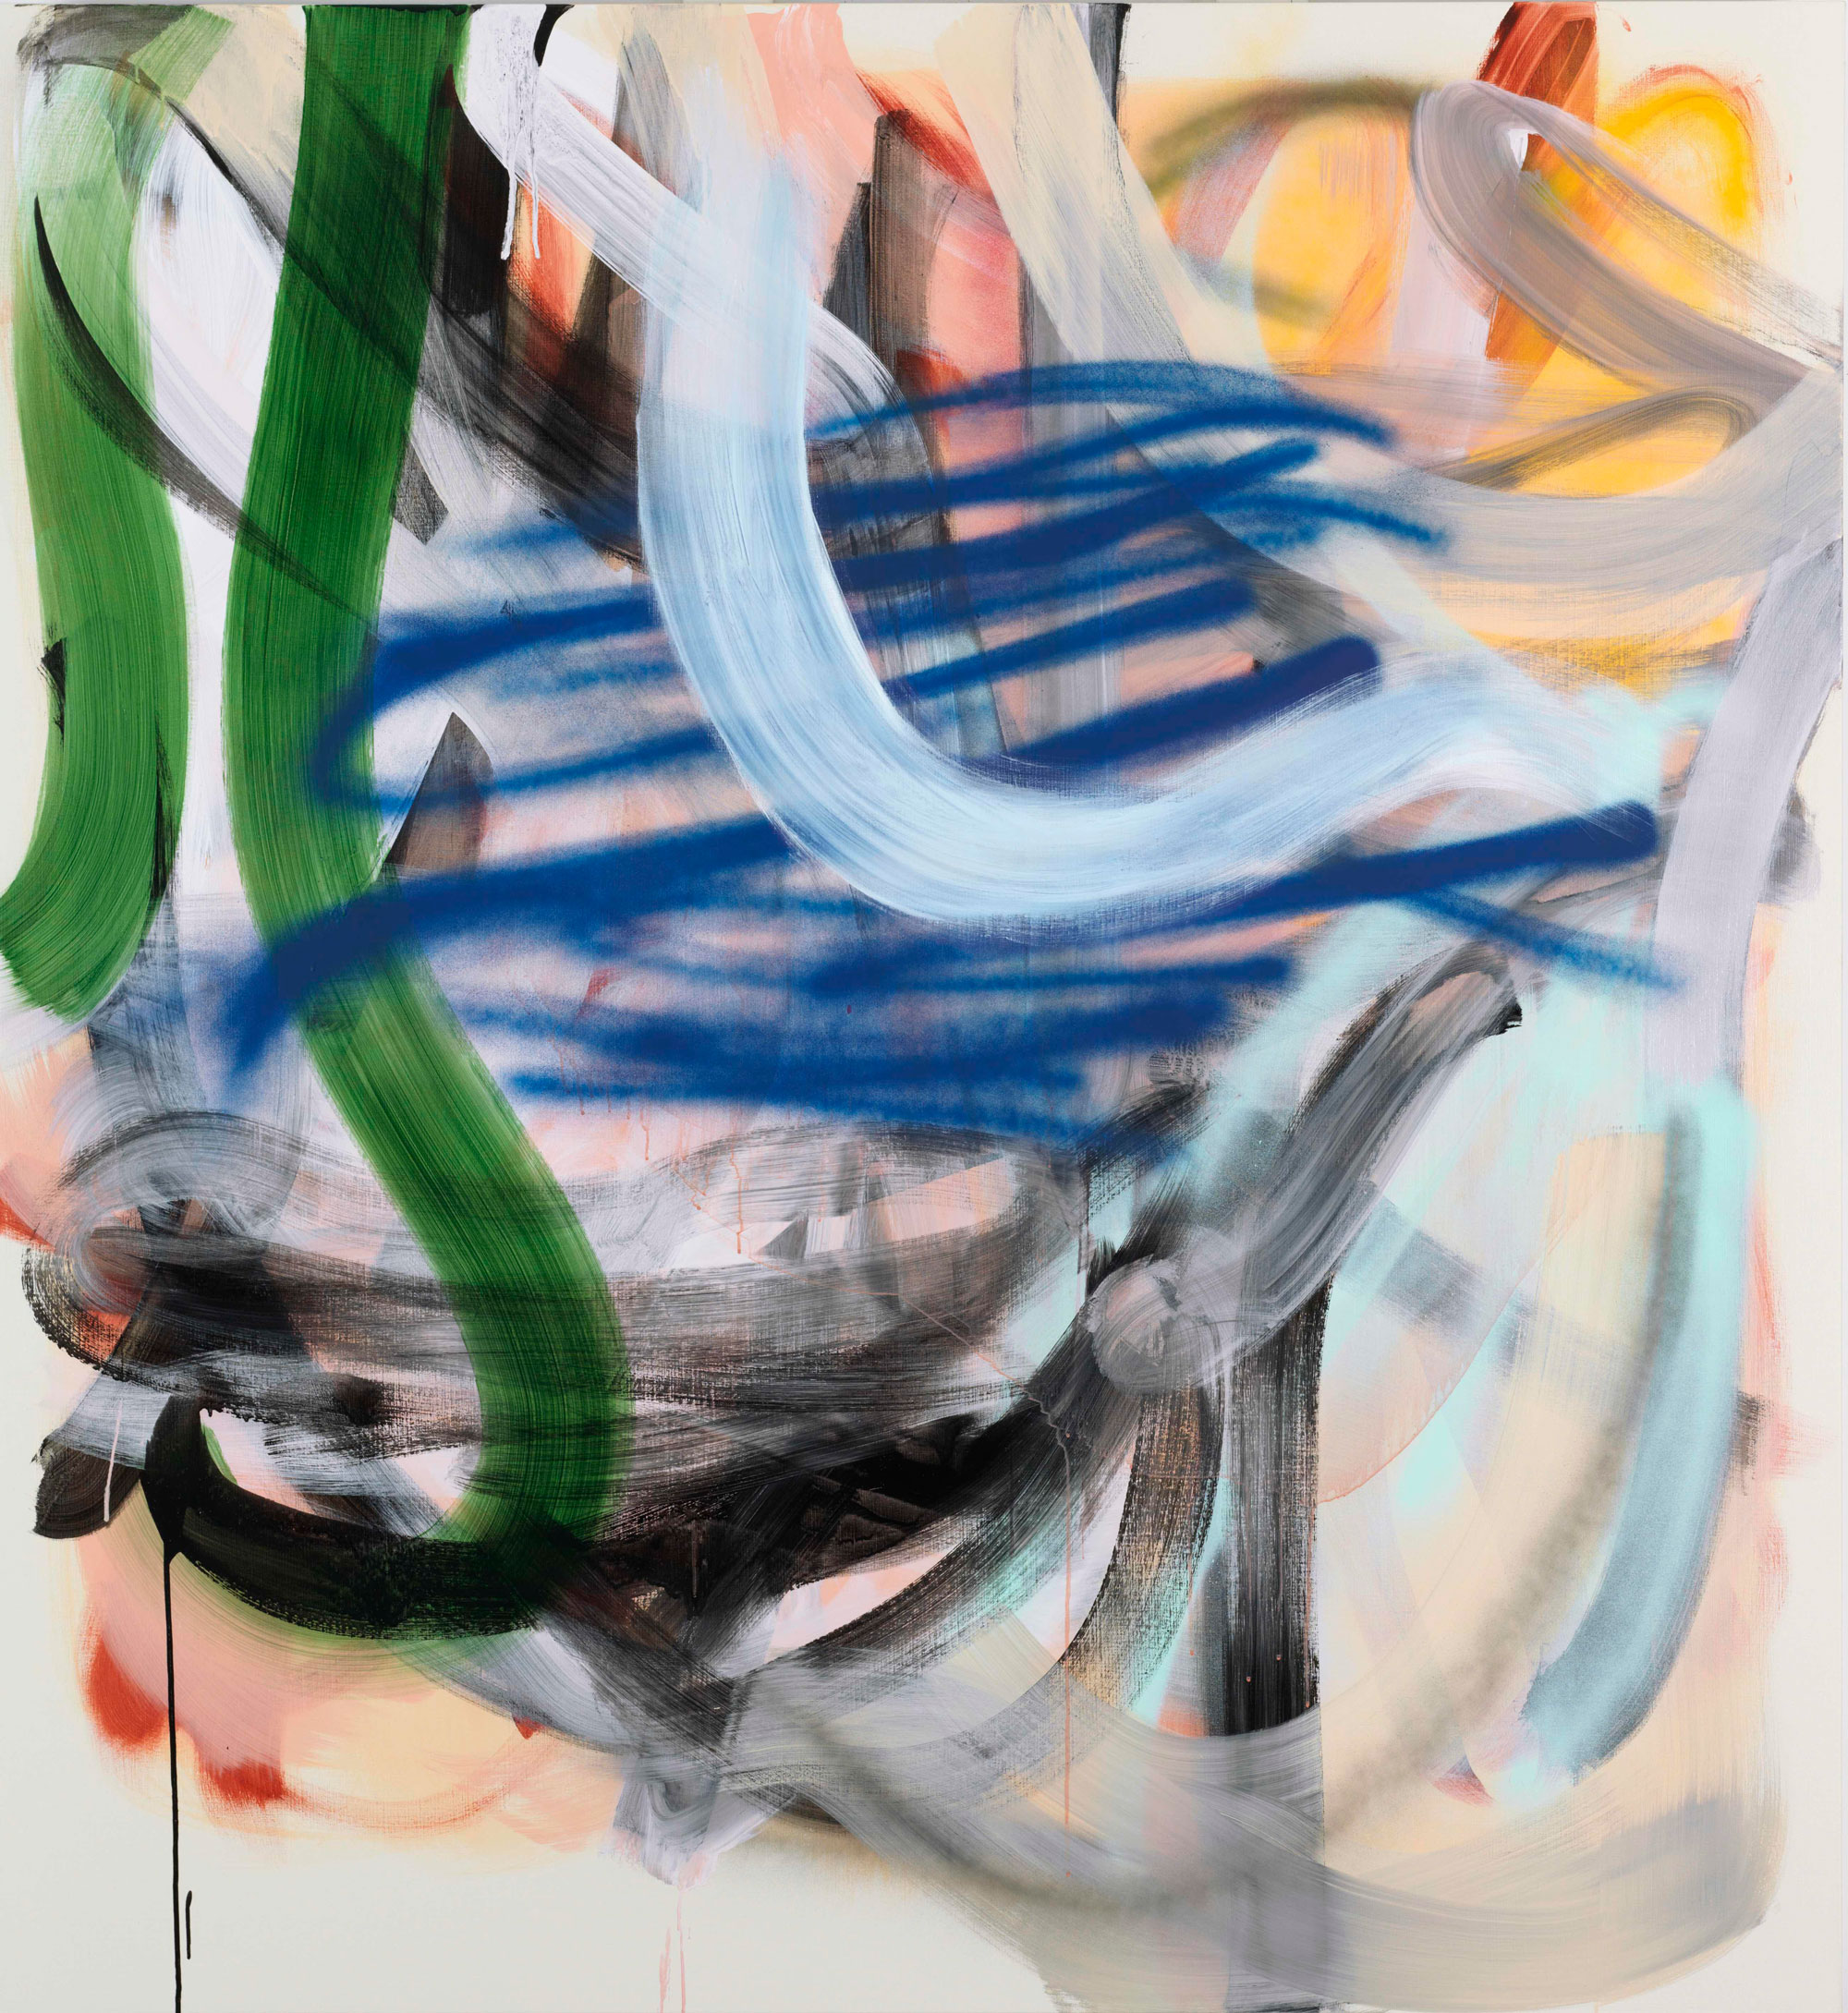 Liliane Tomasko 2019 Acrylic and acrylic spray on linen 76 x 70 in (193 x 177.8 cm) 2019 Marc Straus Gallery